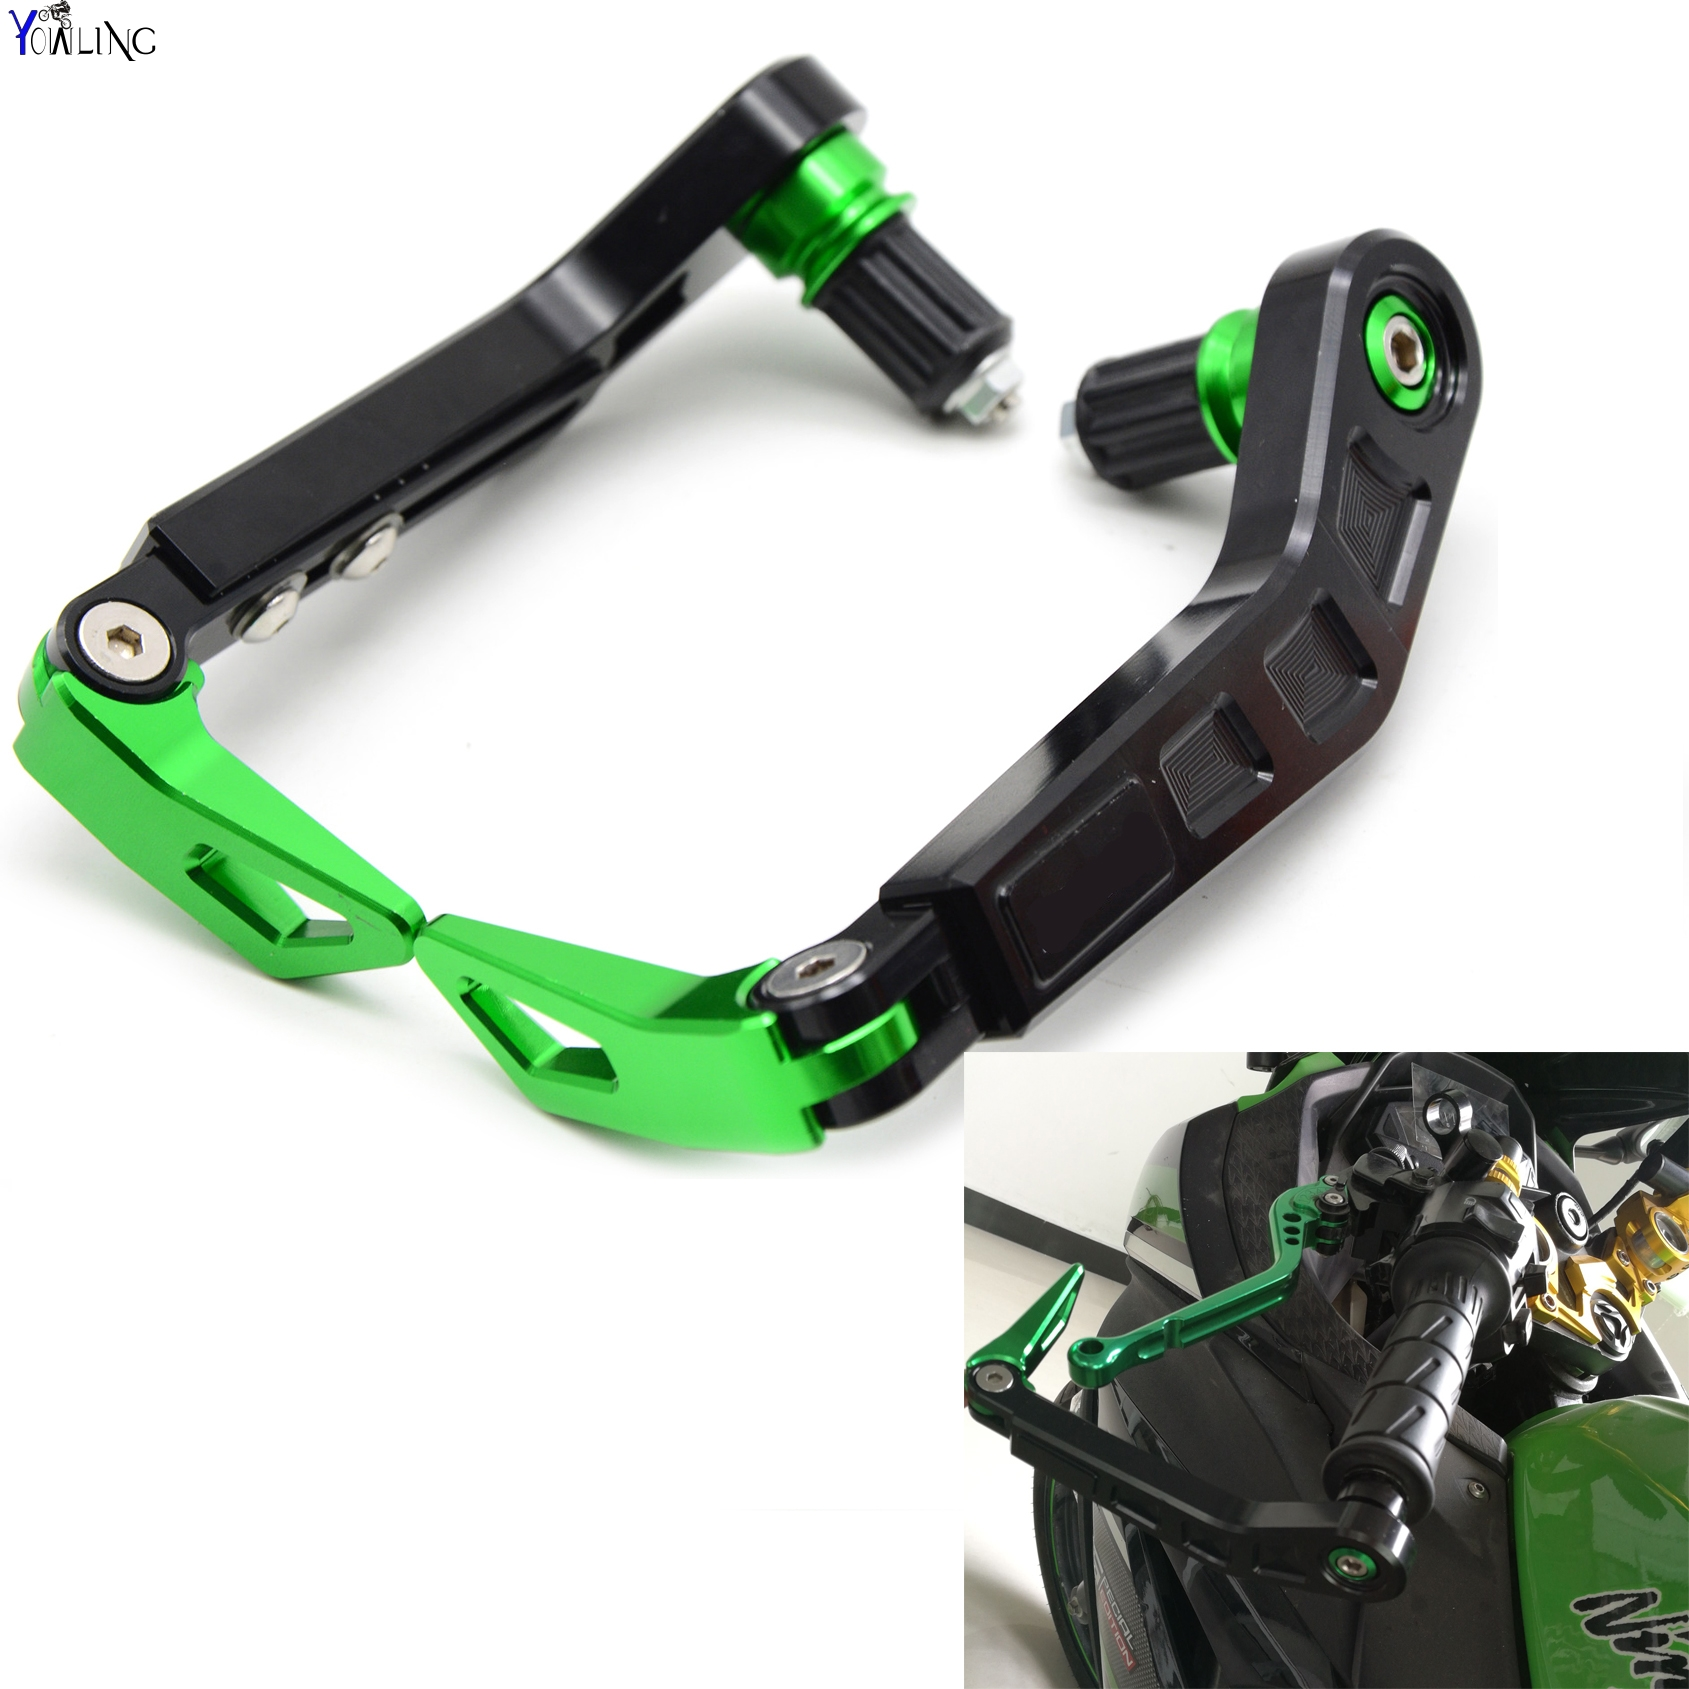 Universal 7/822mm Motorcycle Handlebar Brake Clutch Lever Protect Guard for Kawasaki W800/SE Z1000 Z1000SX SX Tourer Z125 Z250 for 22mm 7 8 handlebar motorcycle dirt bike universal stunt clutch lever assembly cnc aluminum